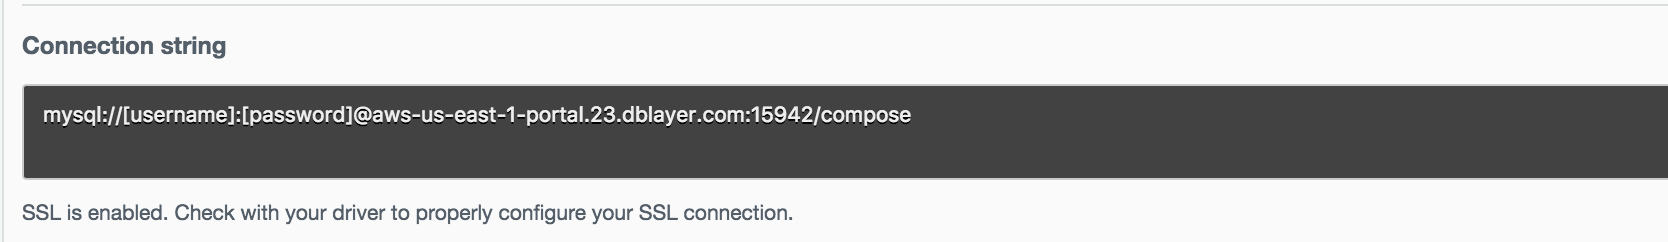 An example connection string from the Compose UI.